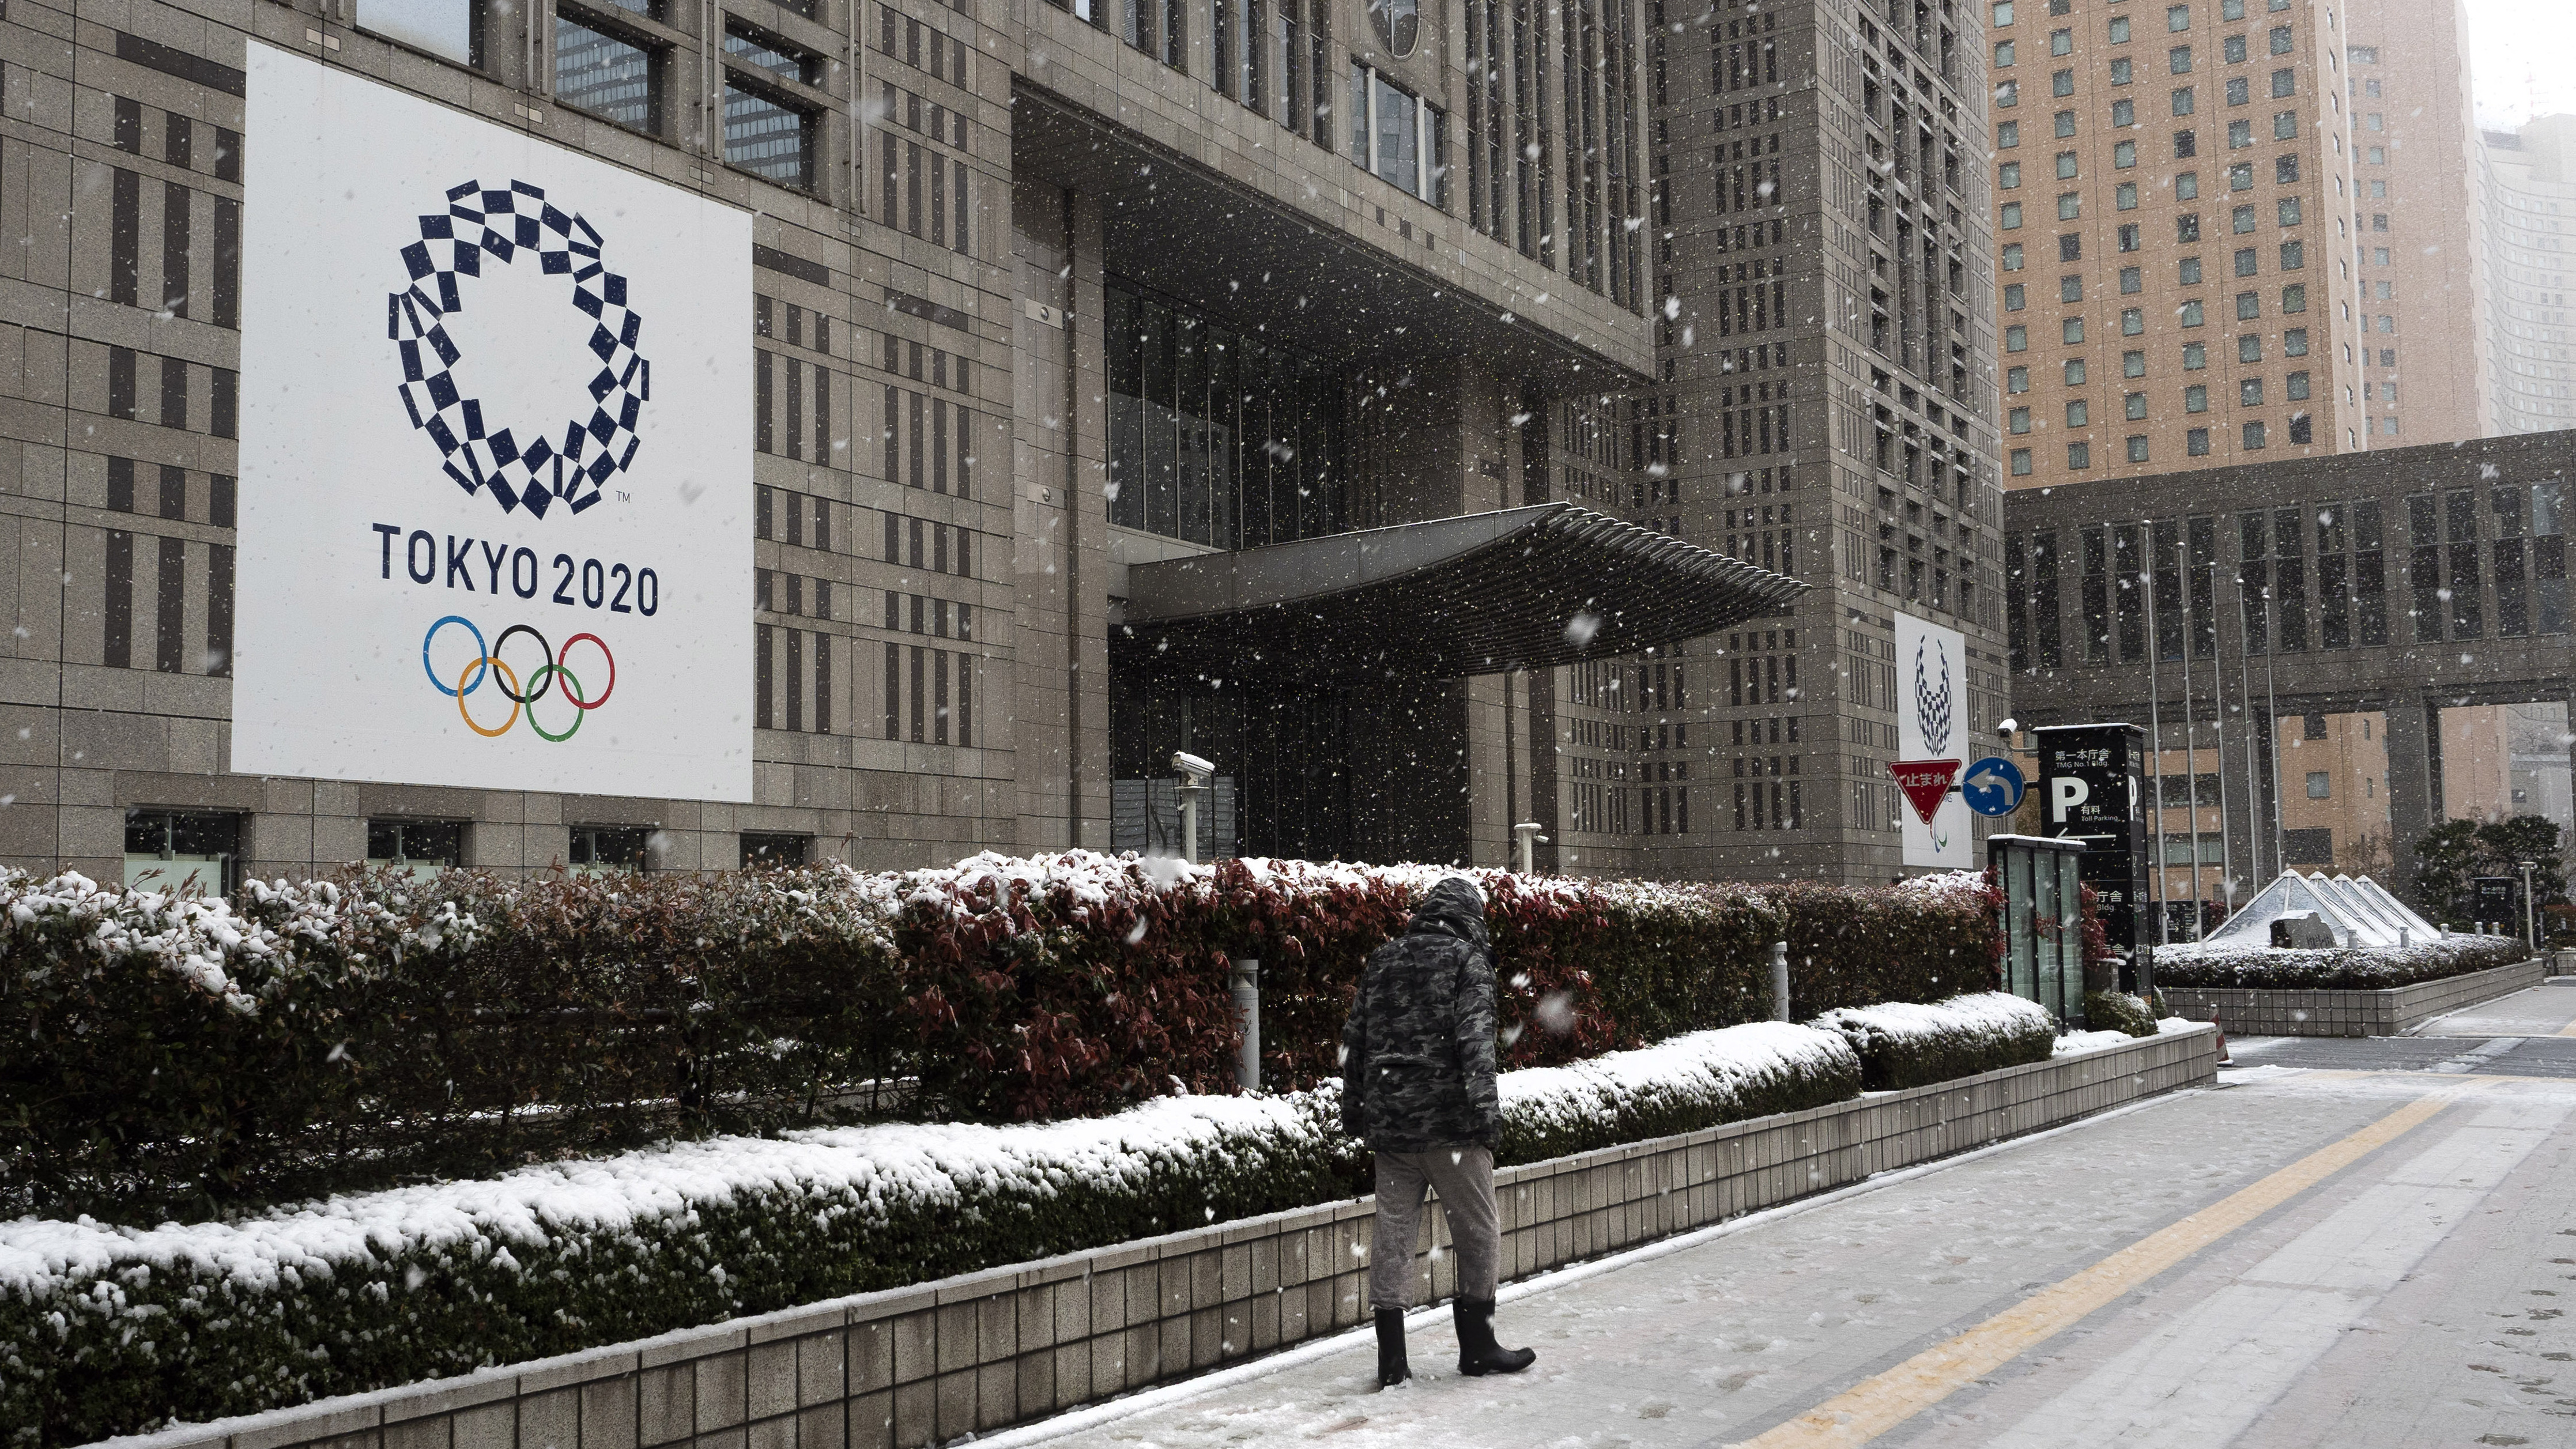 Tokyo 2020 Olympics Have A New Start Date: July Of 2021